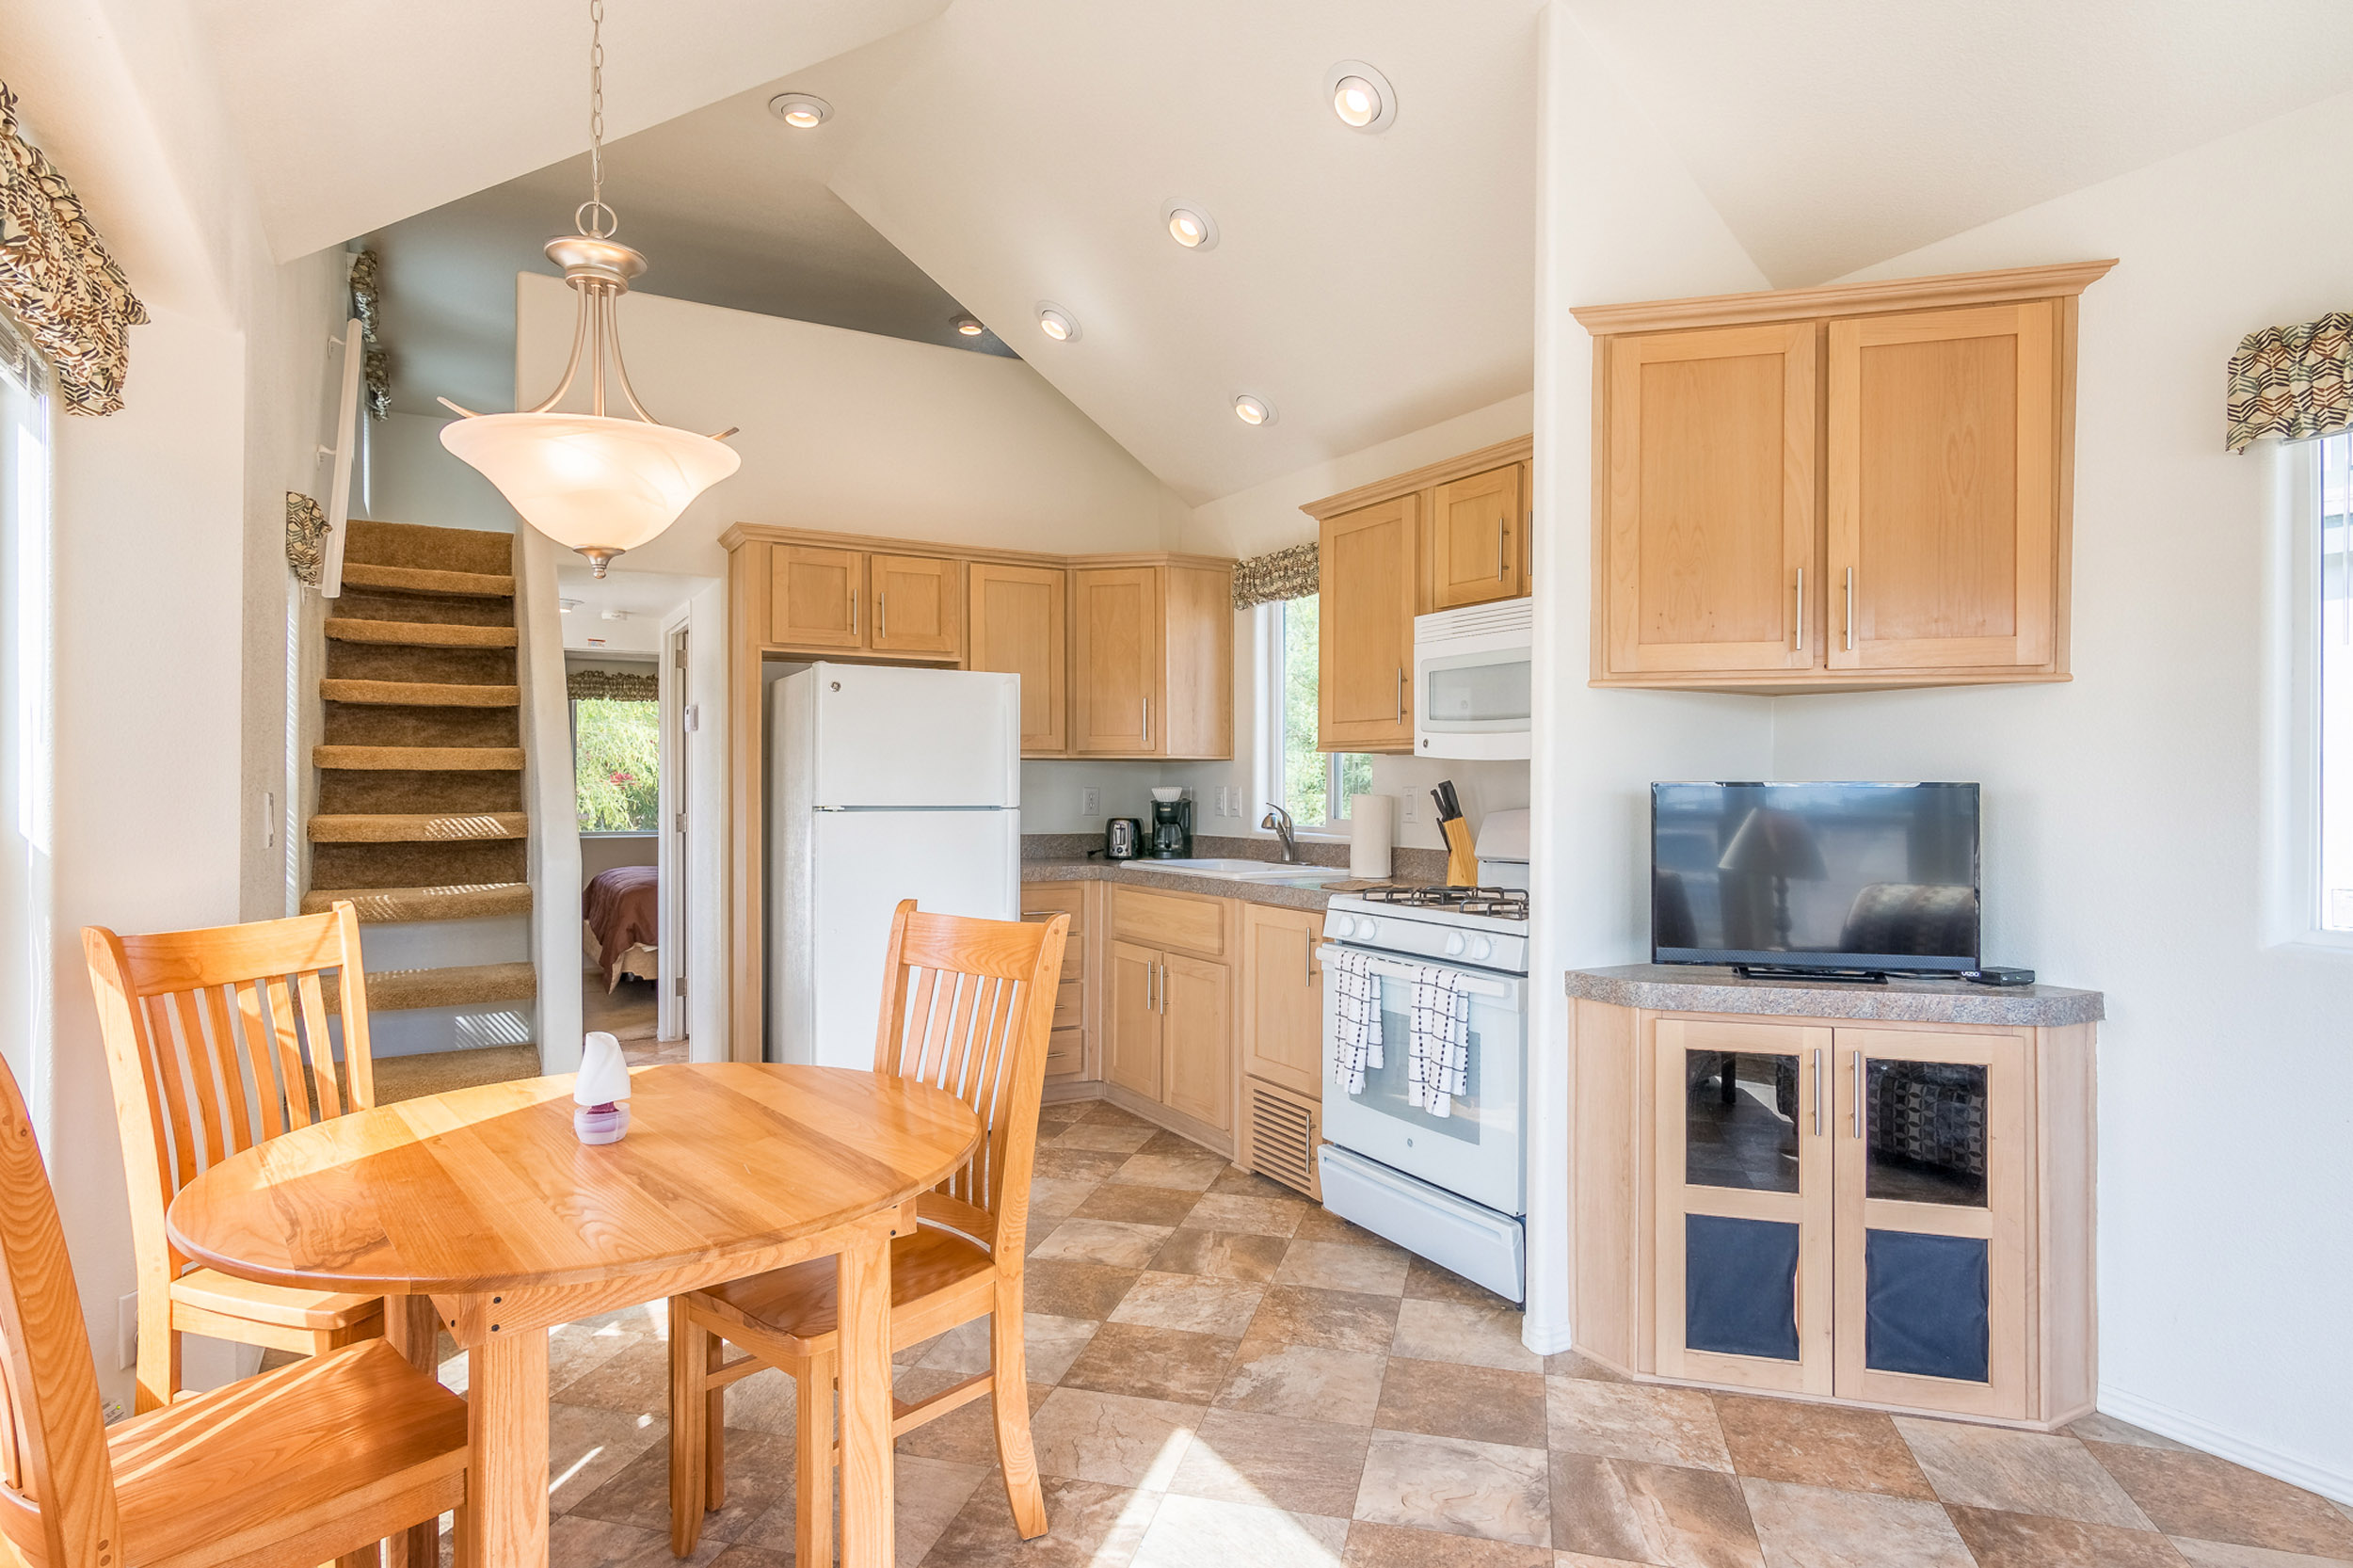 Small River Home Rentals — $139+ - Small river vacation home rentals are fully-furnished and equipped with appliances, cookware, and dishes. Daily rates start at $139.